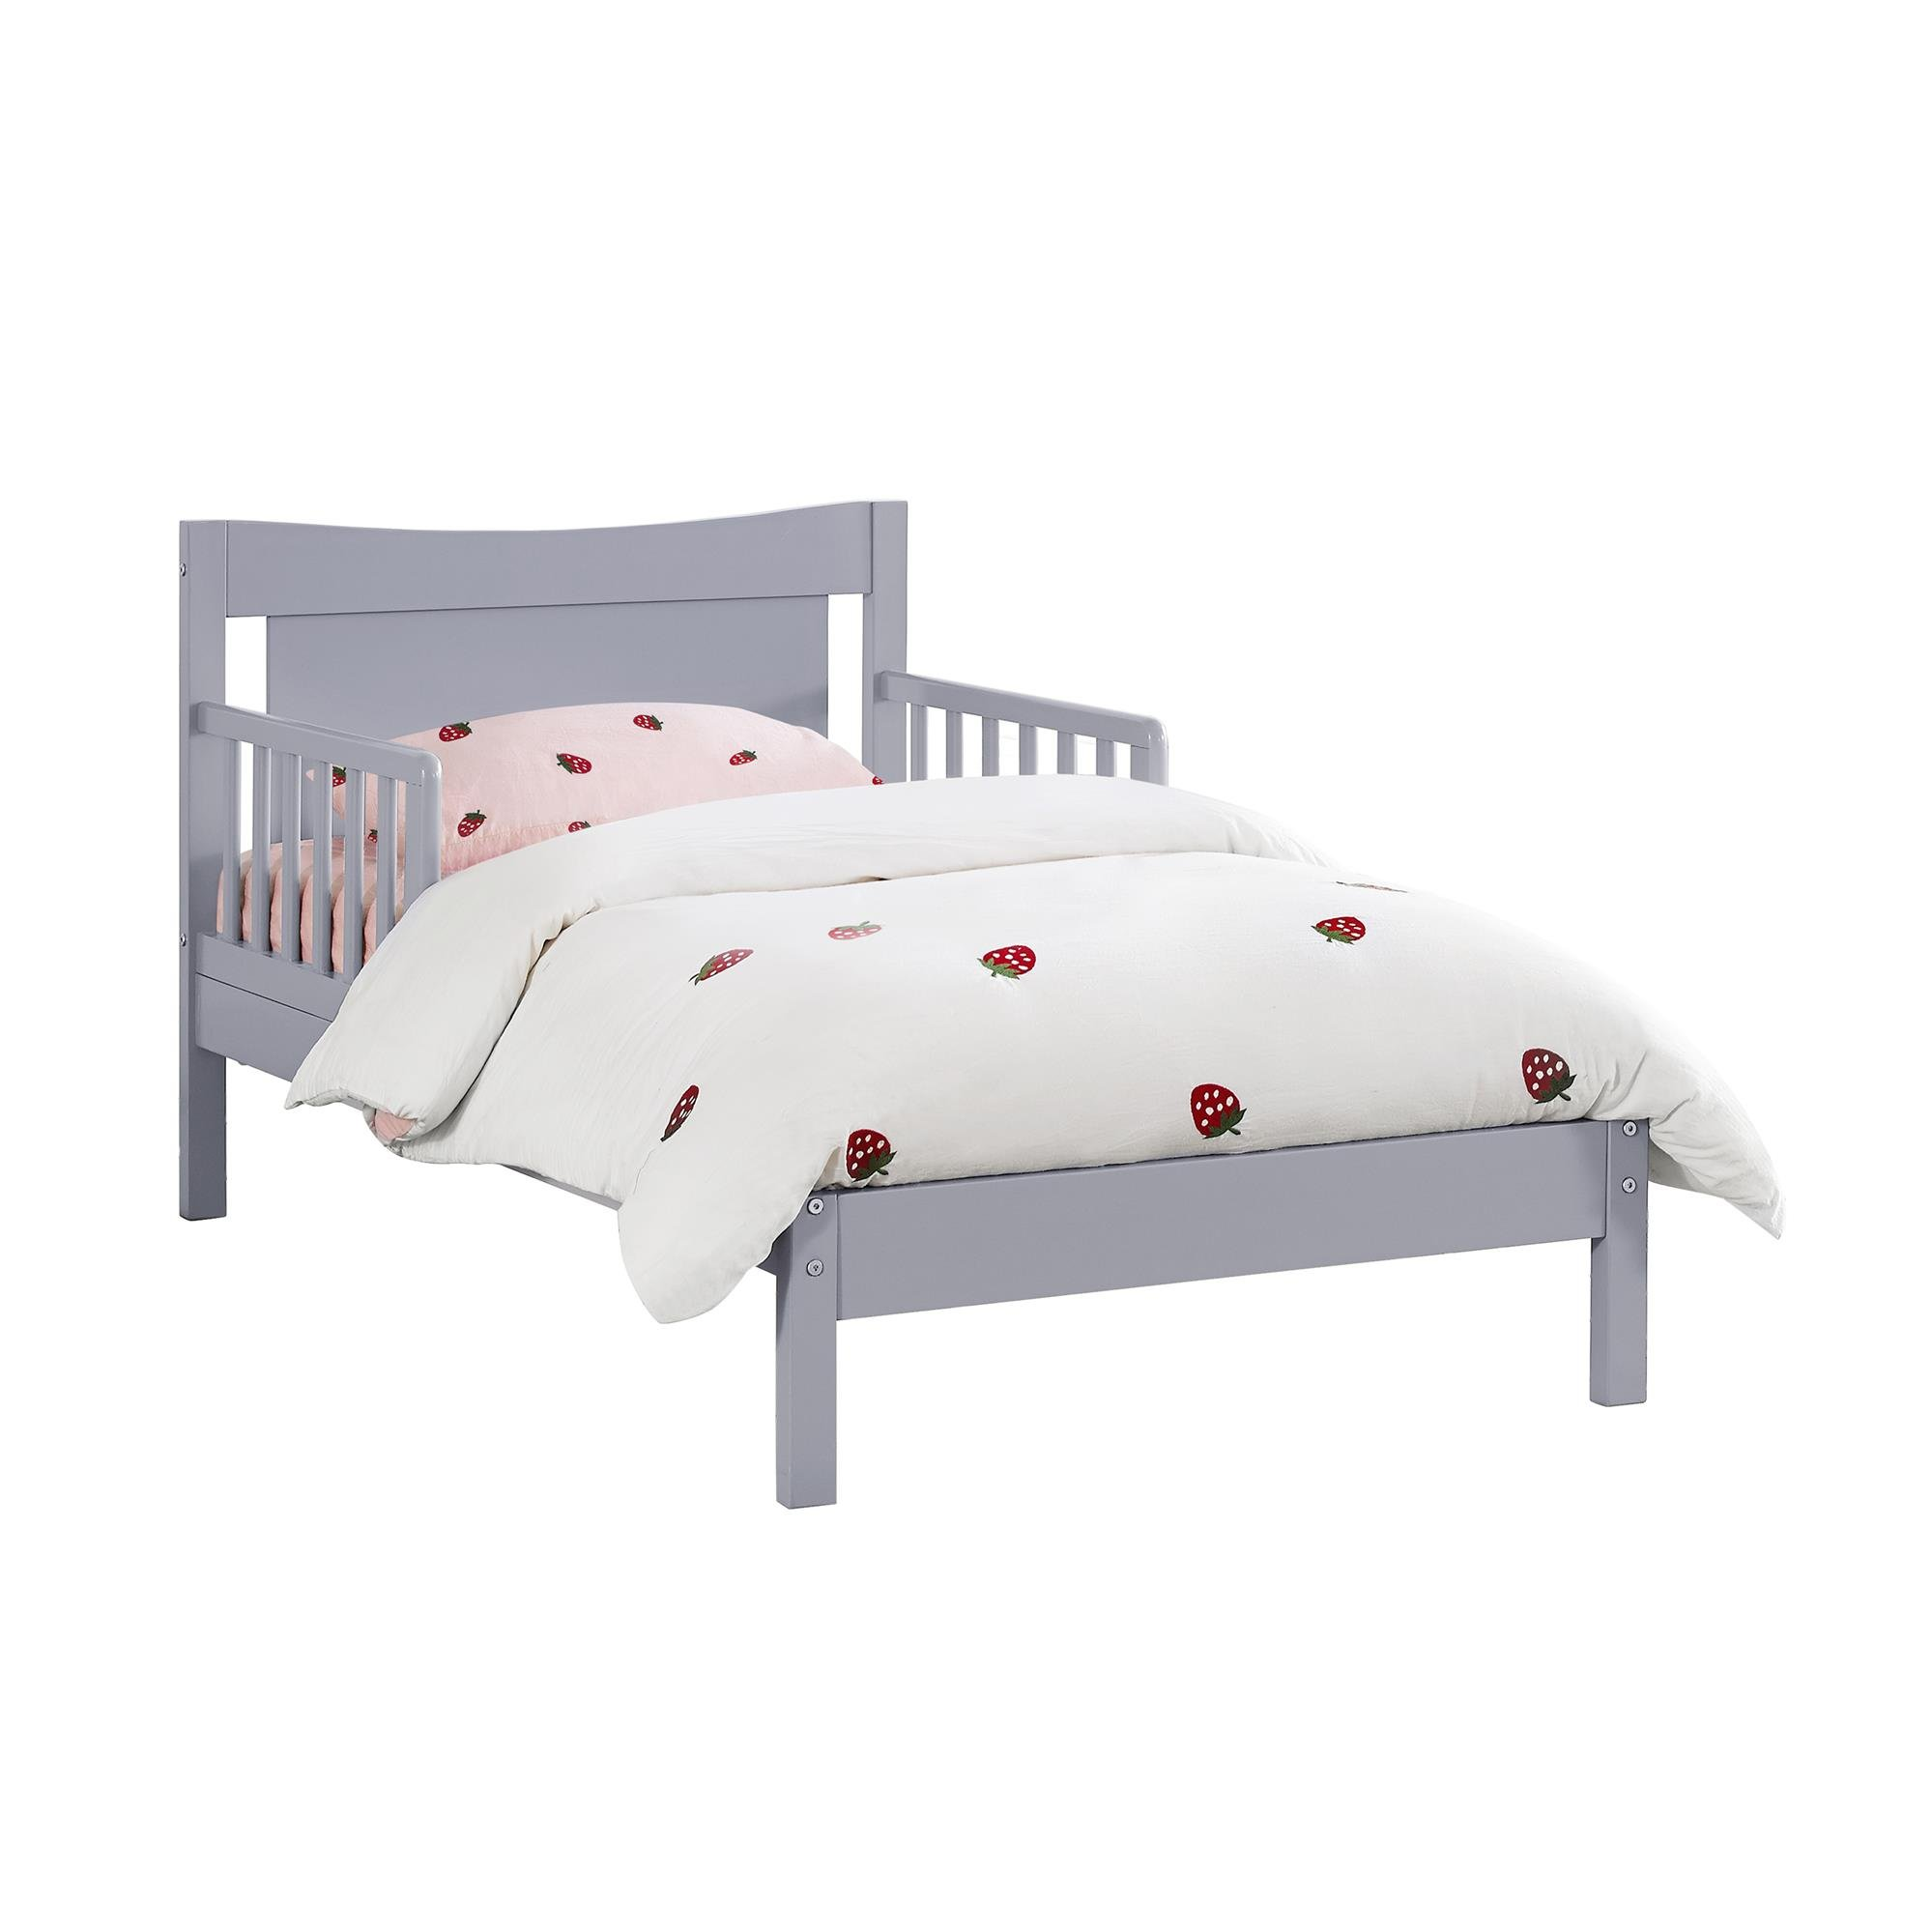 Baby Relax Memphis Toddler Bed, Gray by Baby Relax